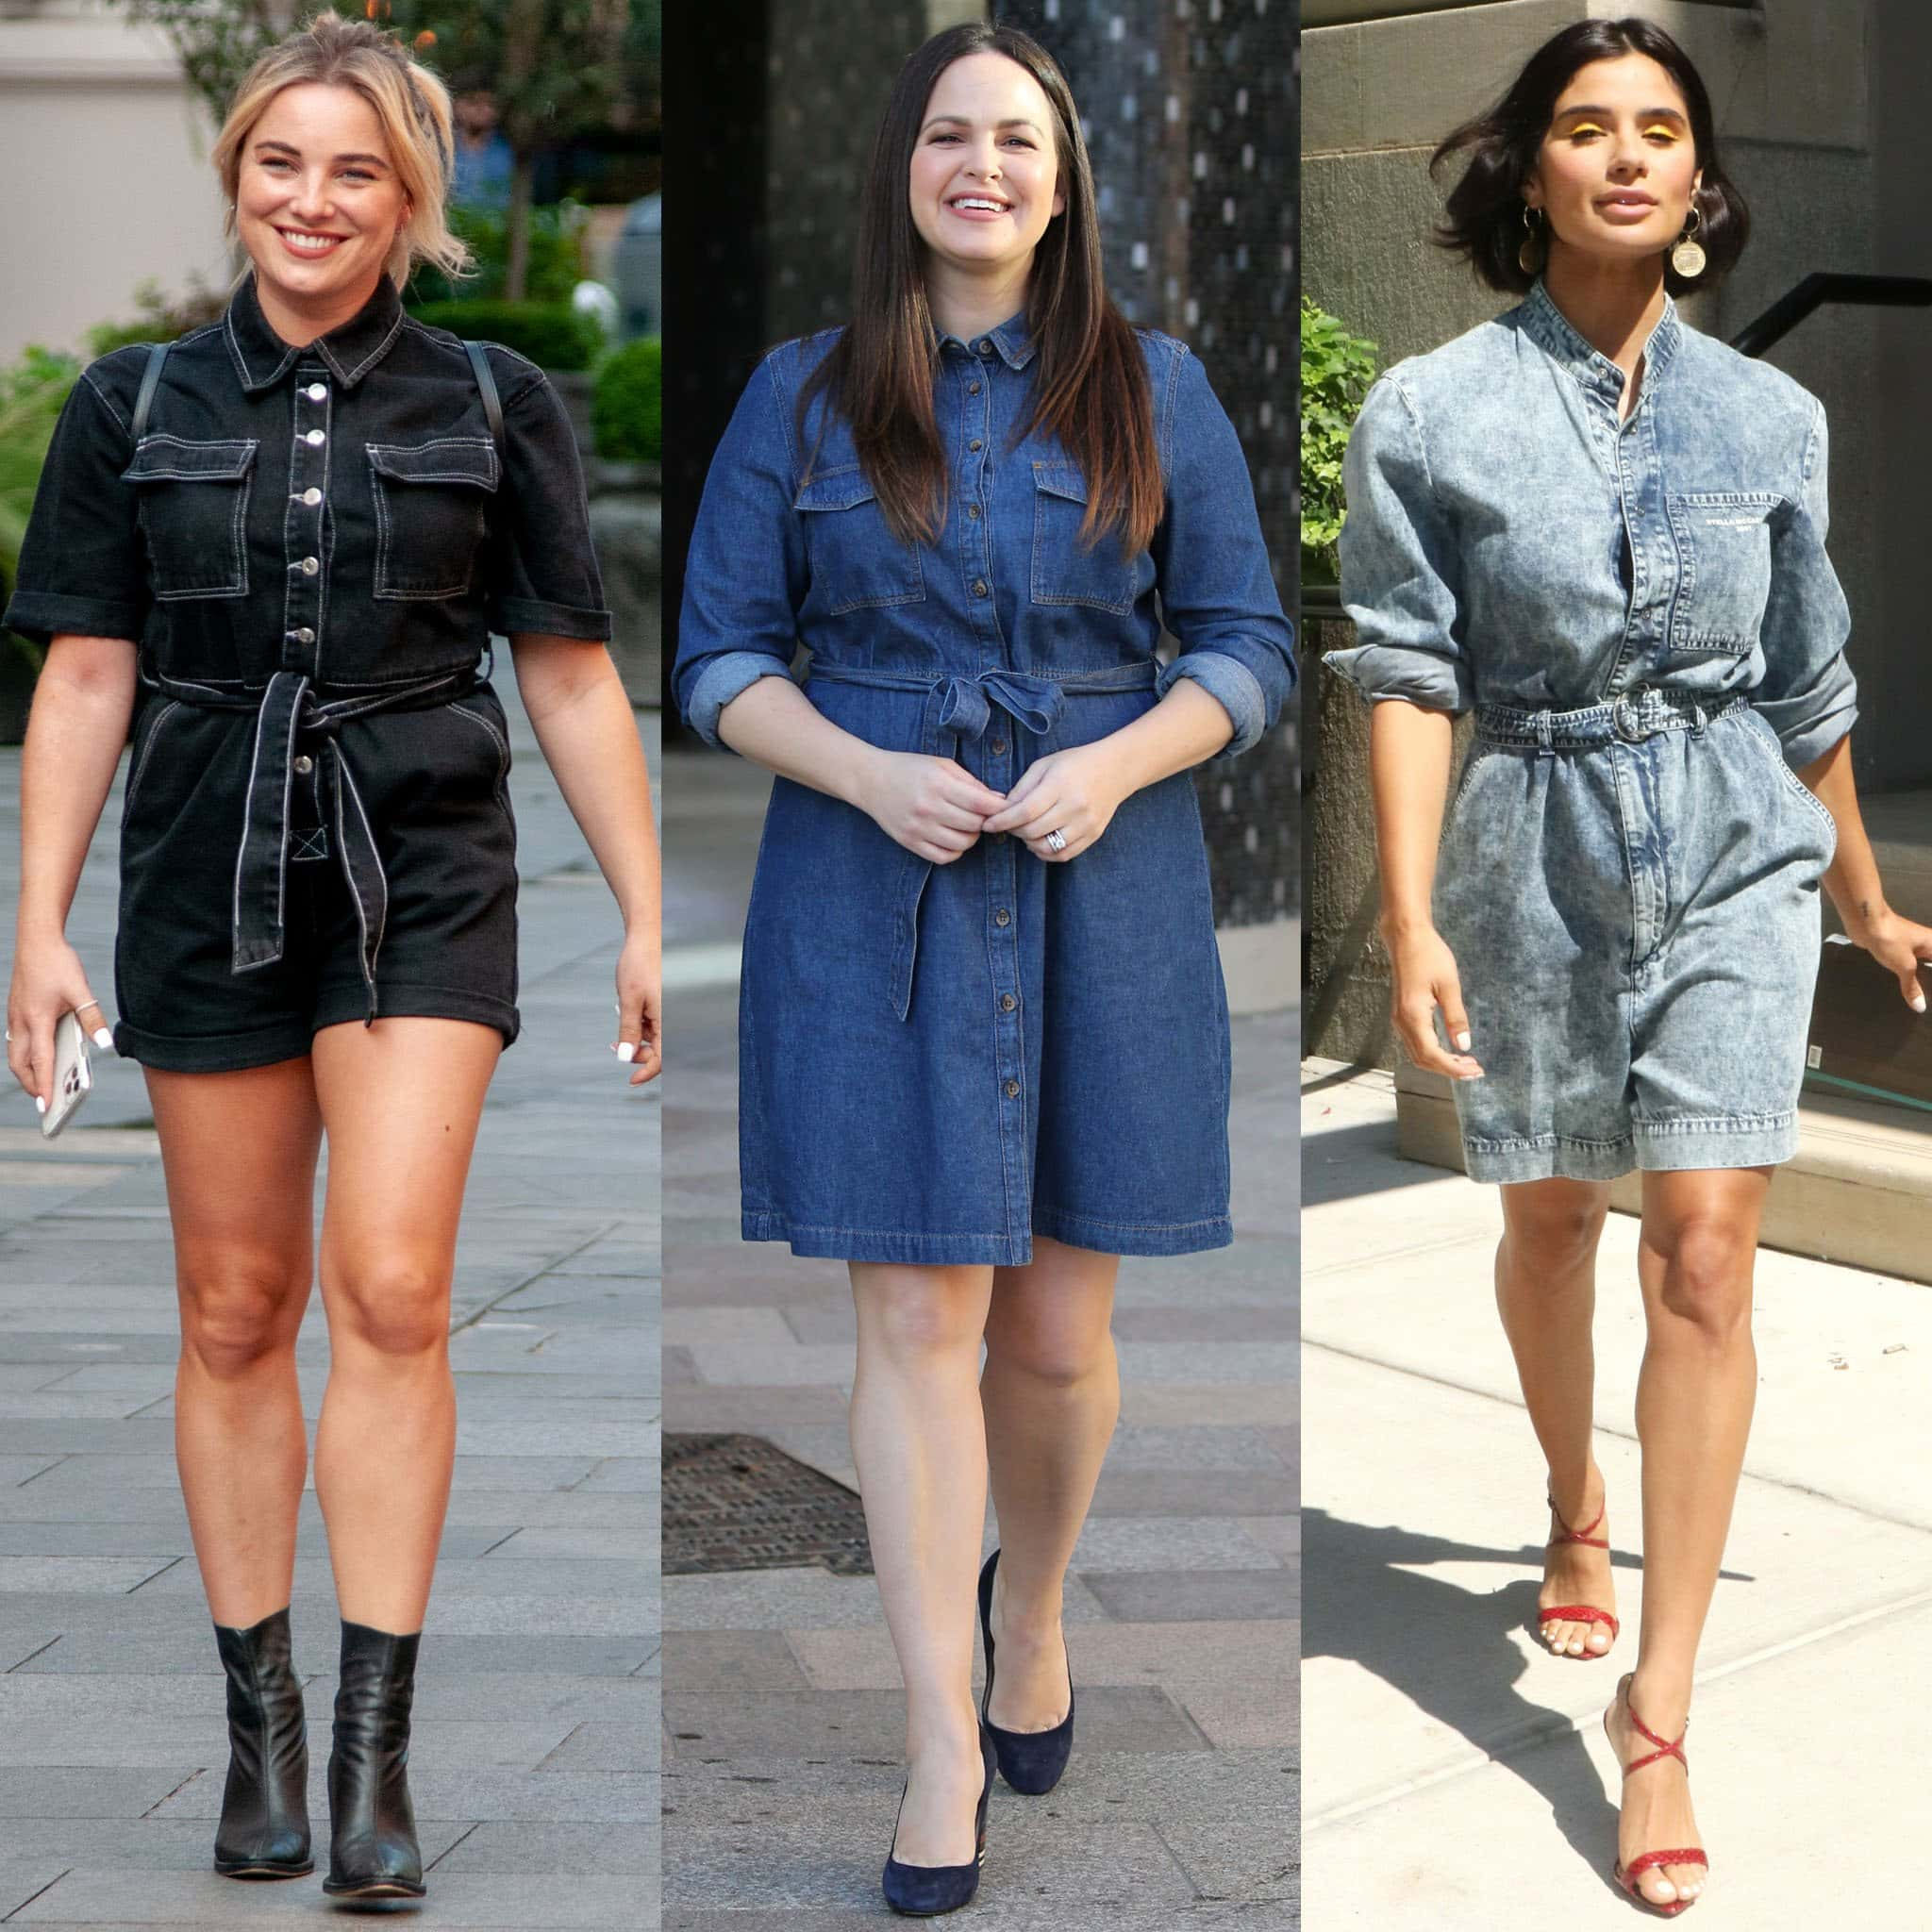 Sian Welby, Giovanna Fletcher, and Vanessa Kirby prove that denim dresses can work with any shoe styles